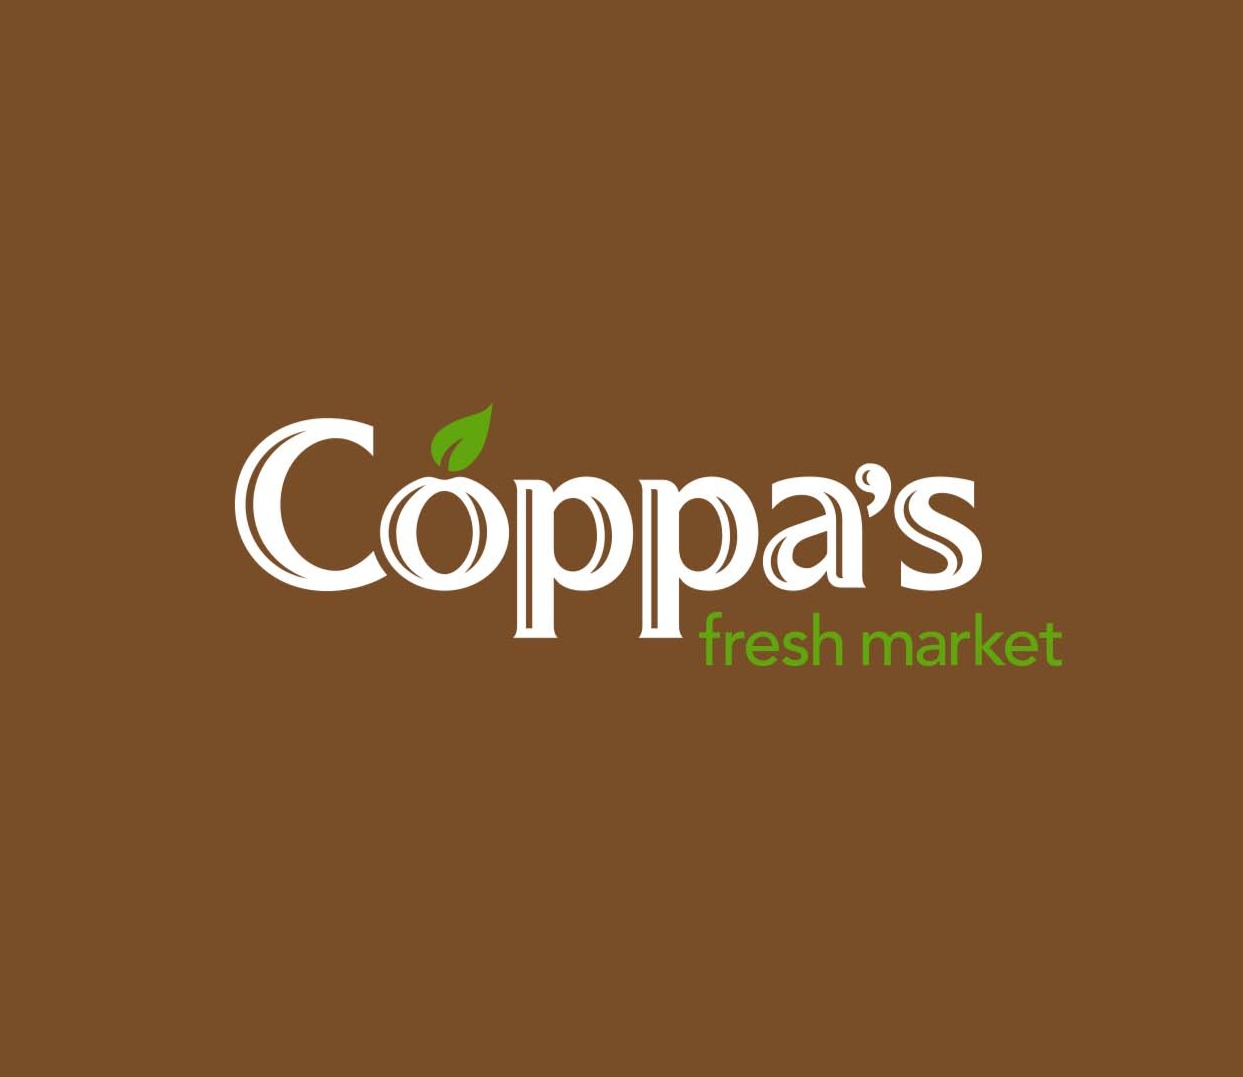 Coppa's Refreshed Identity